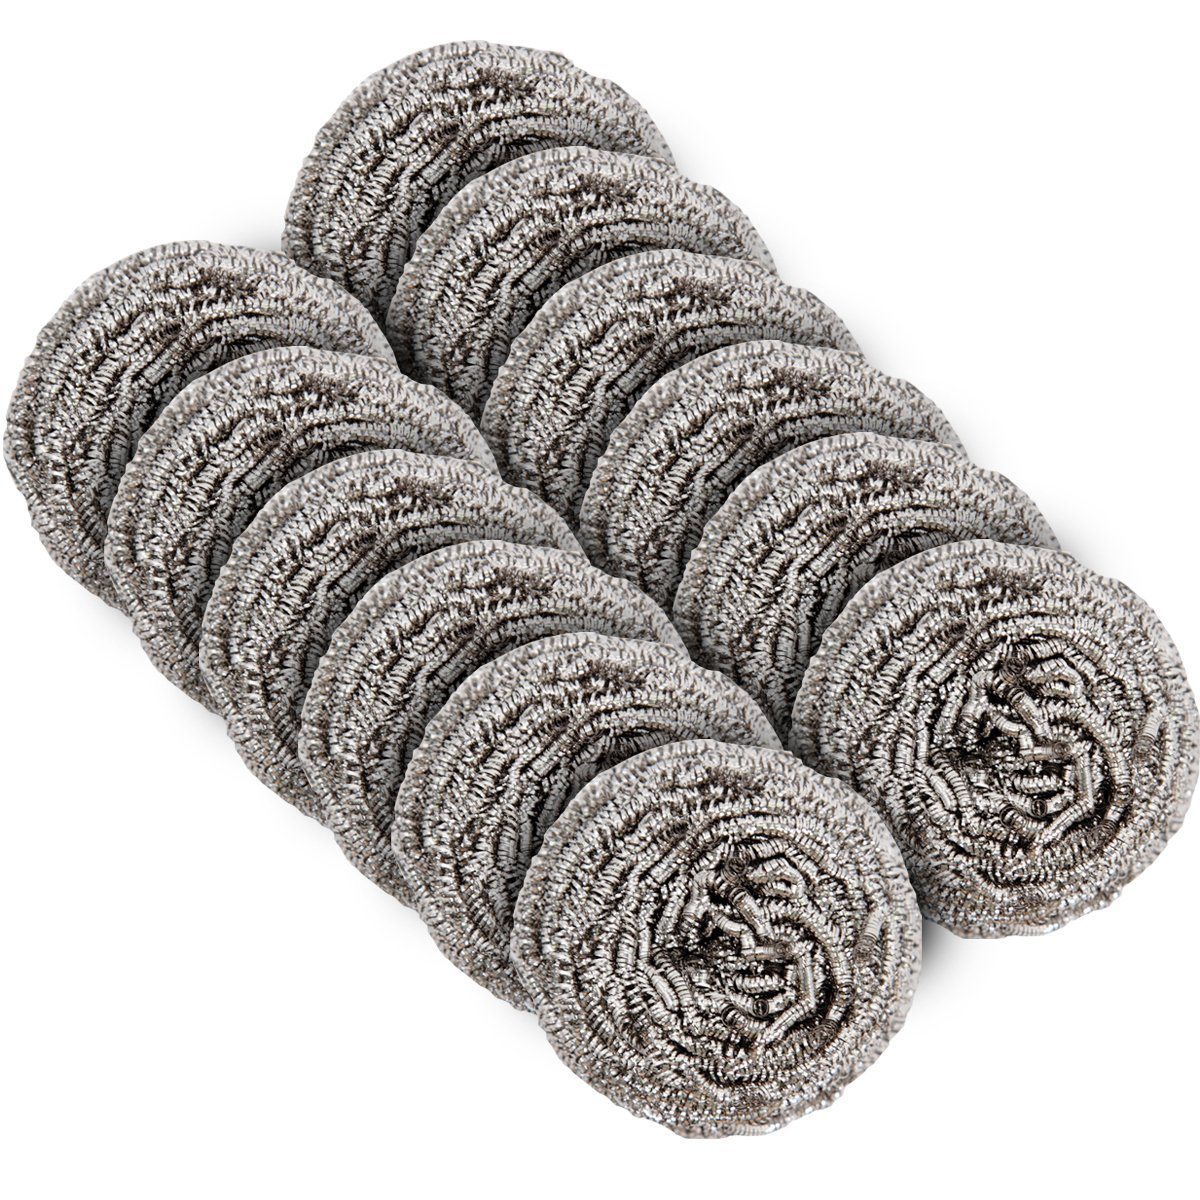 MR. SIGA Stainless Steel Scourer, Pack of 12, 30g Ningbo Shijia Cleaning Tools Co. Ltd. SJ21582